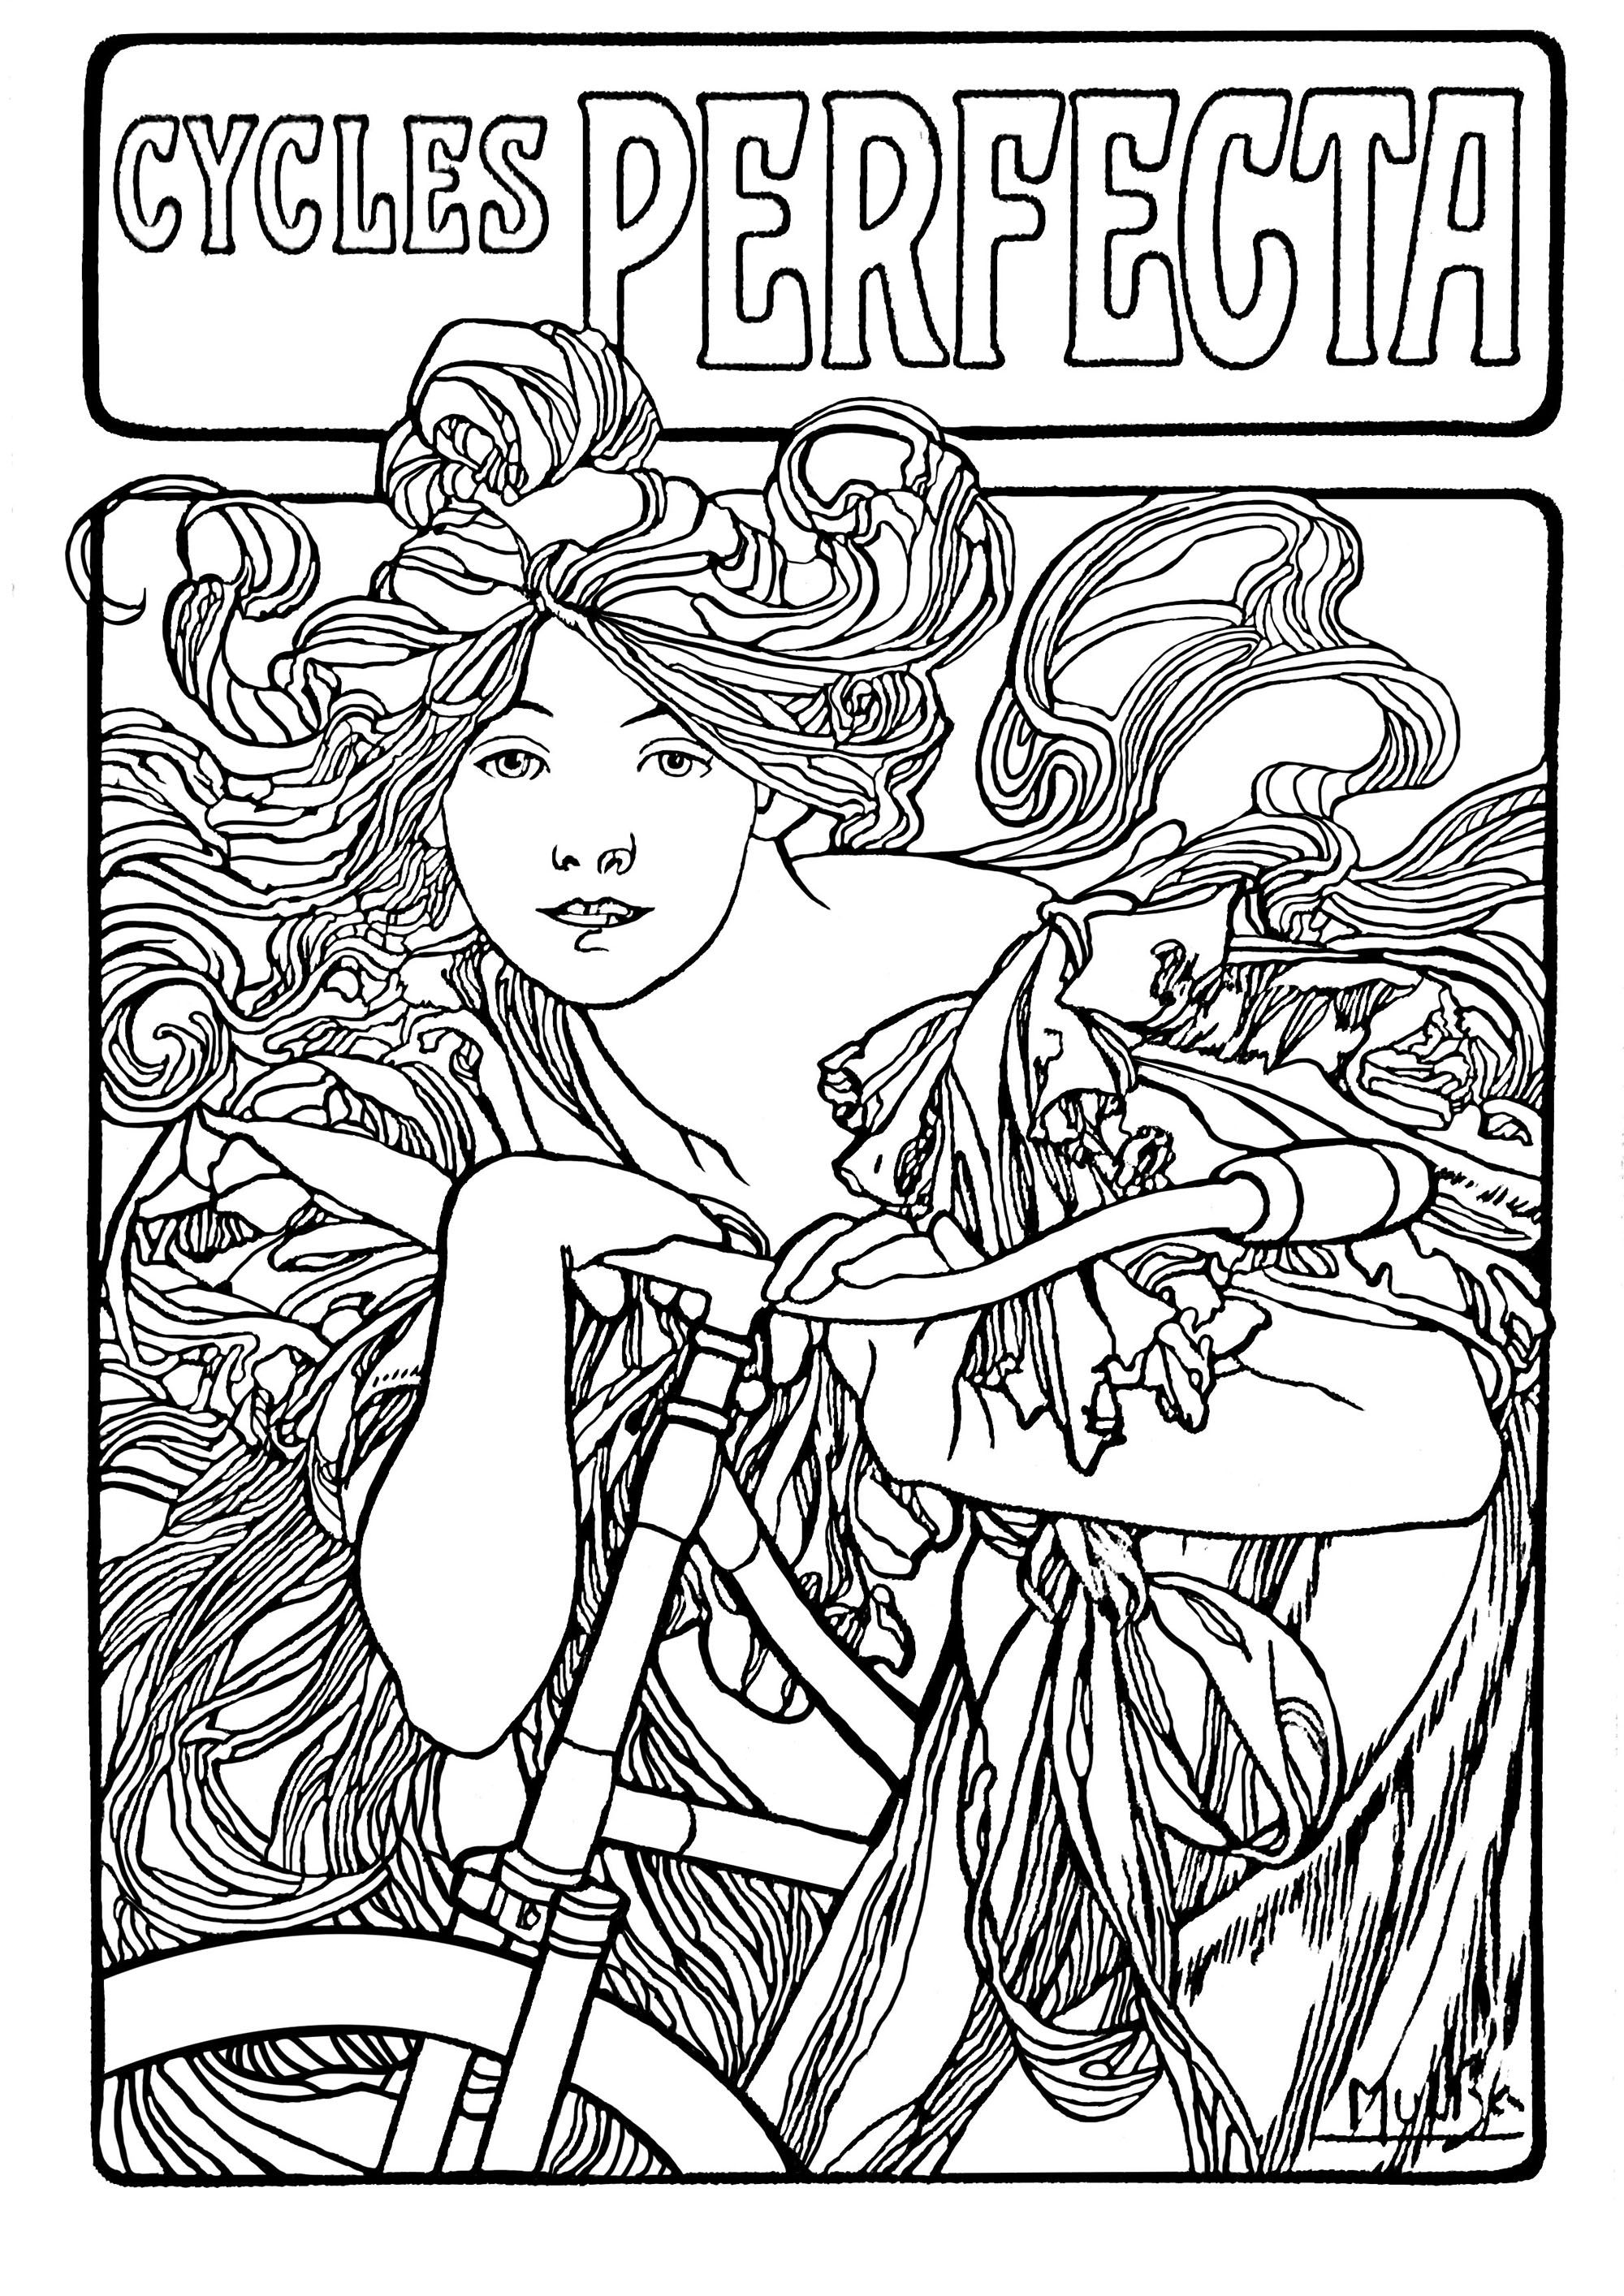 Cycles perfecta alfons mucha art nouveau coloring pages